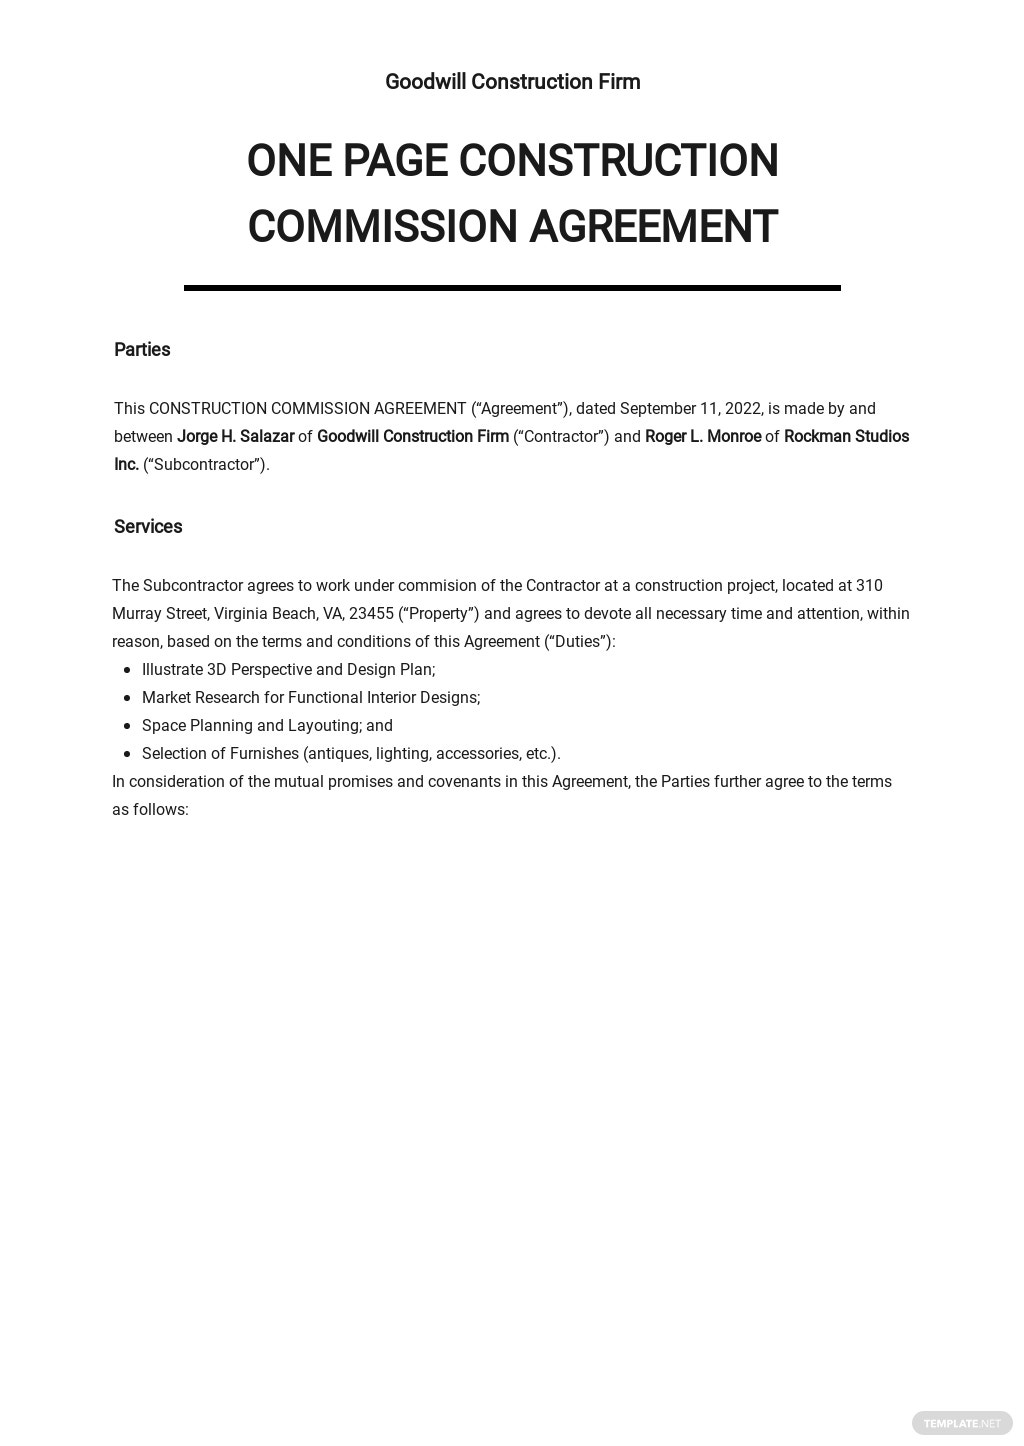 One Page Construction Commission Agreement Template.jpe